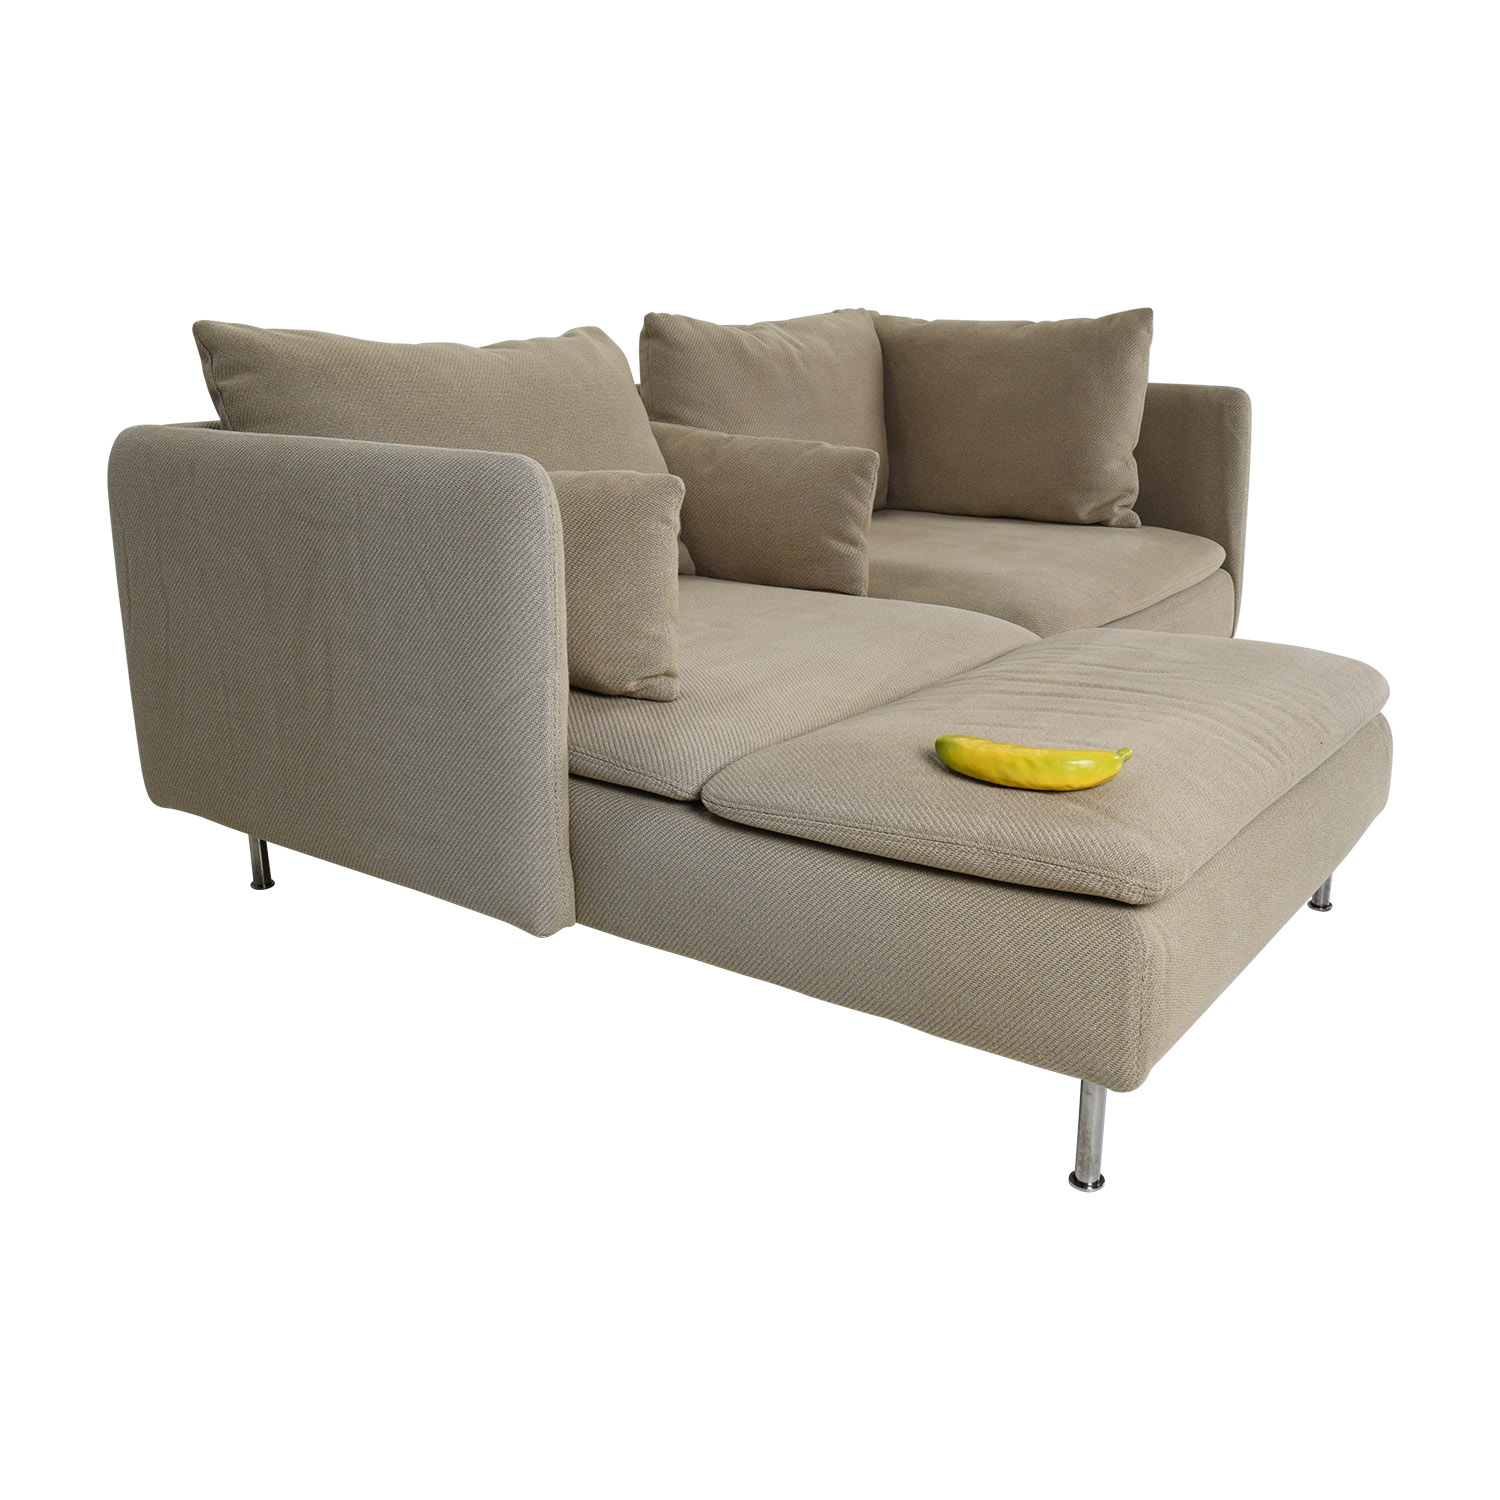 Ikea Furniture Ikea Sectional Sofa Amazing Image Of Sectional Sofas For